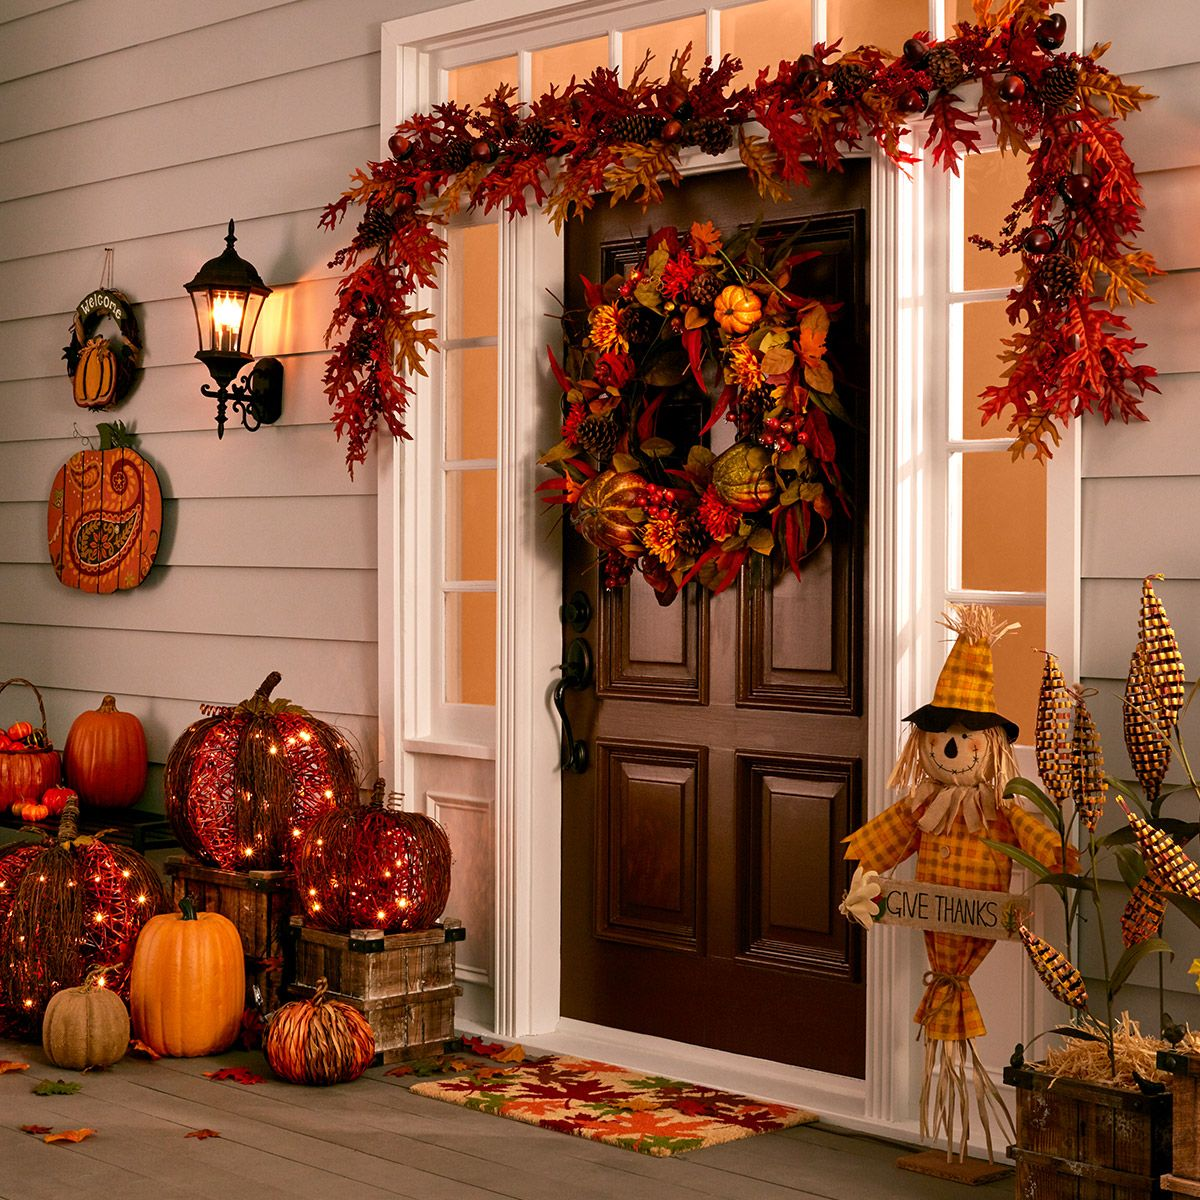 Ten Minute Decorating Ideas: At Home Is Giving Thanks For YOU This Holiday Season. Head